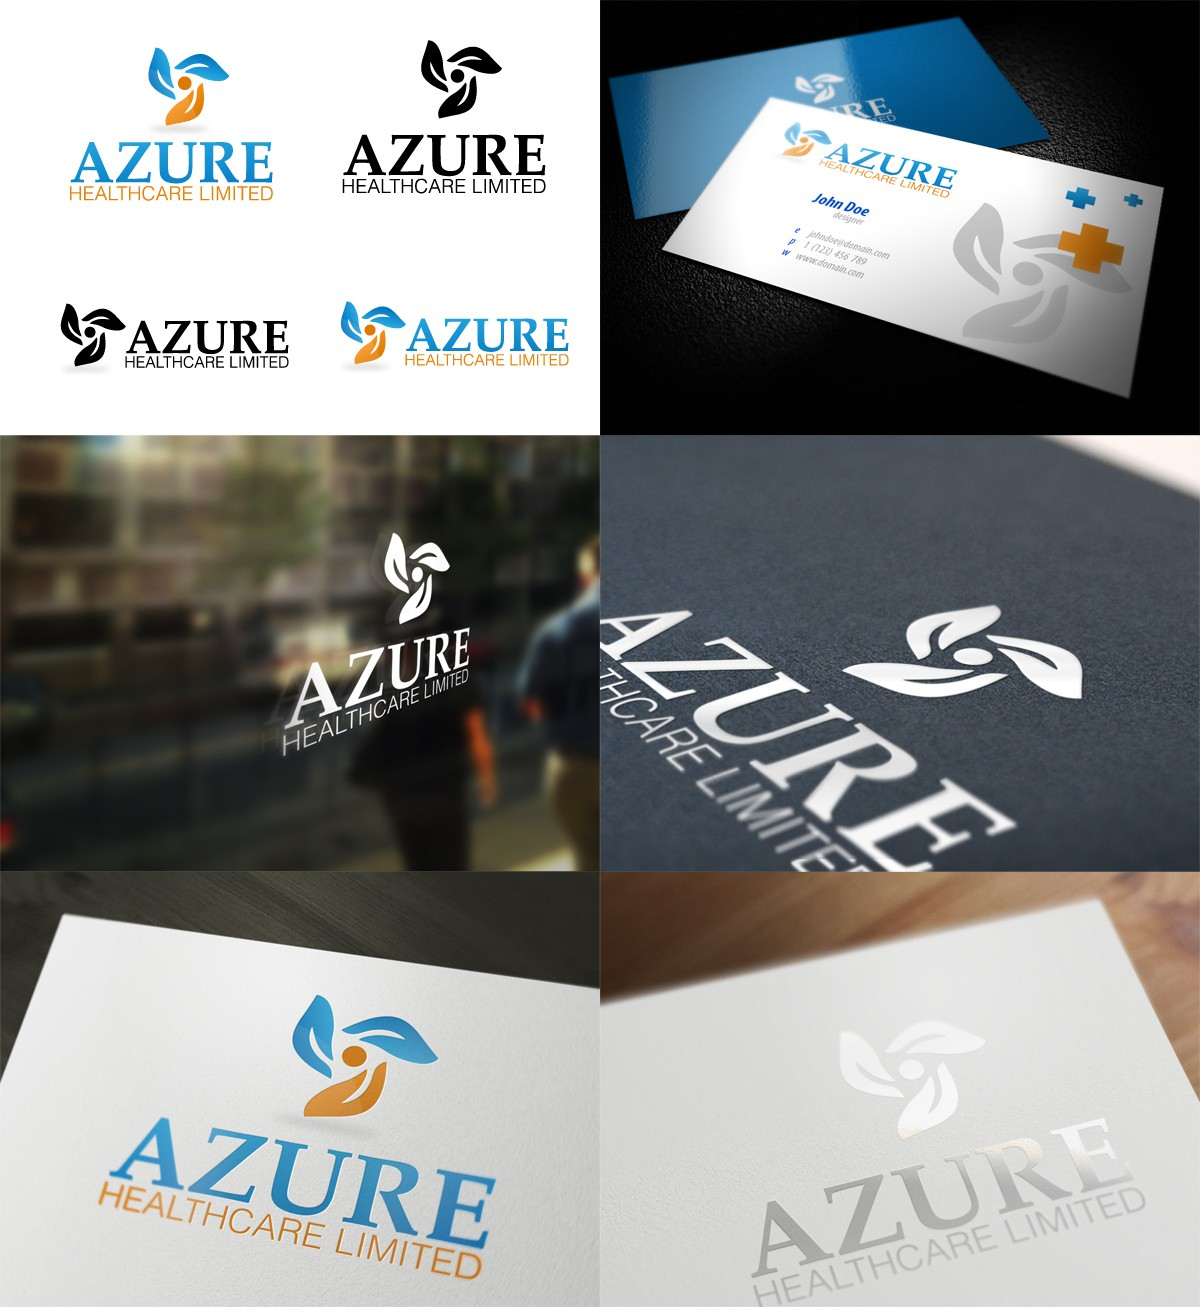 Help Azure Healthcare Limited with a new logo